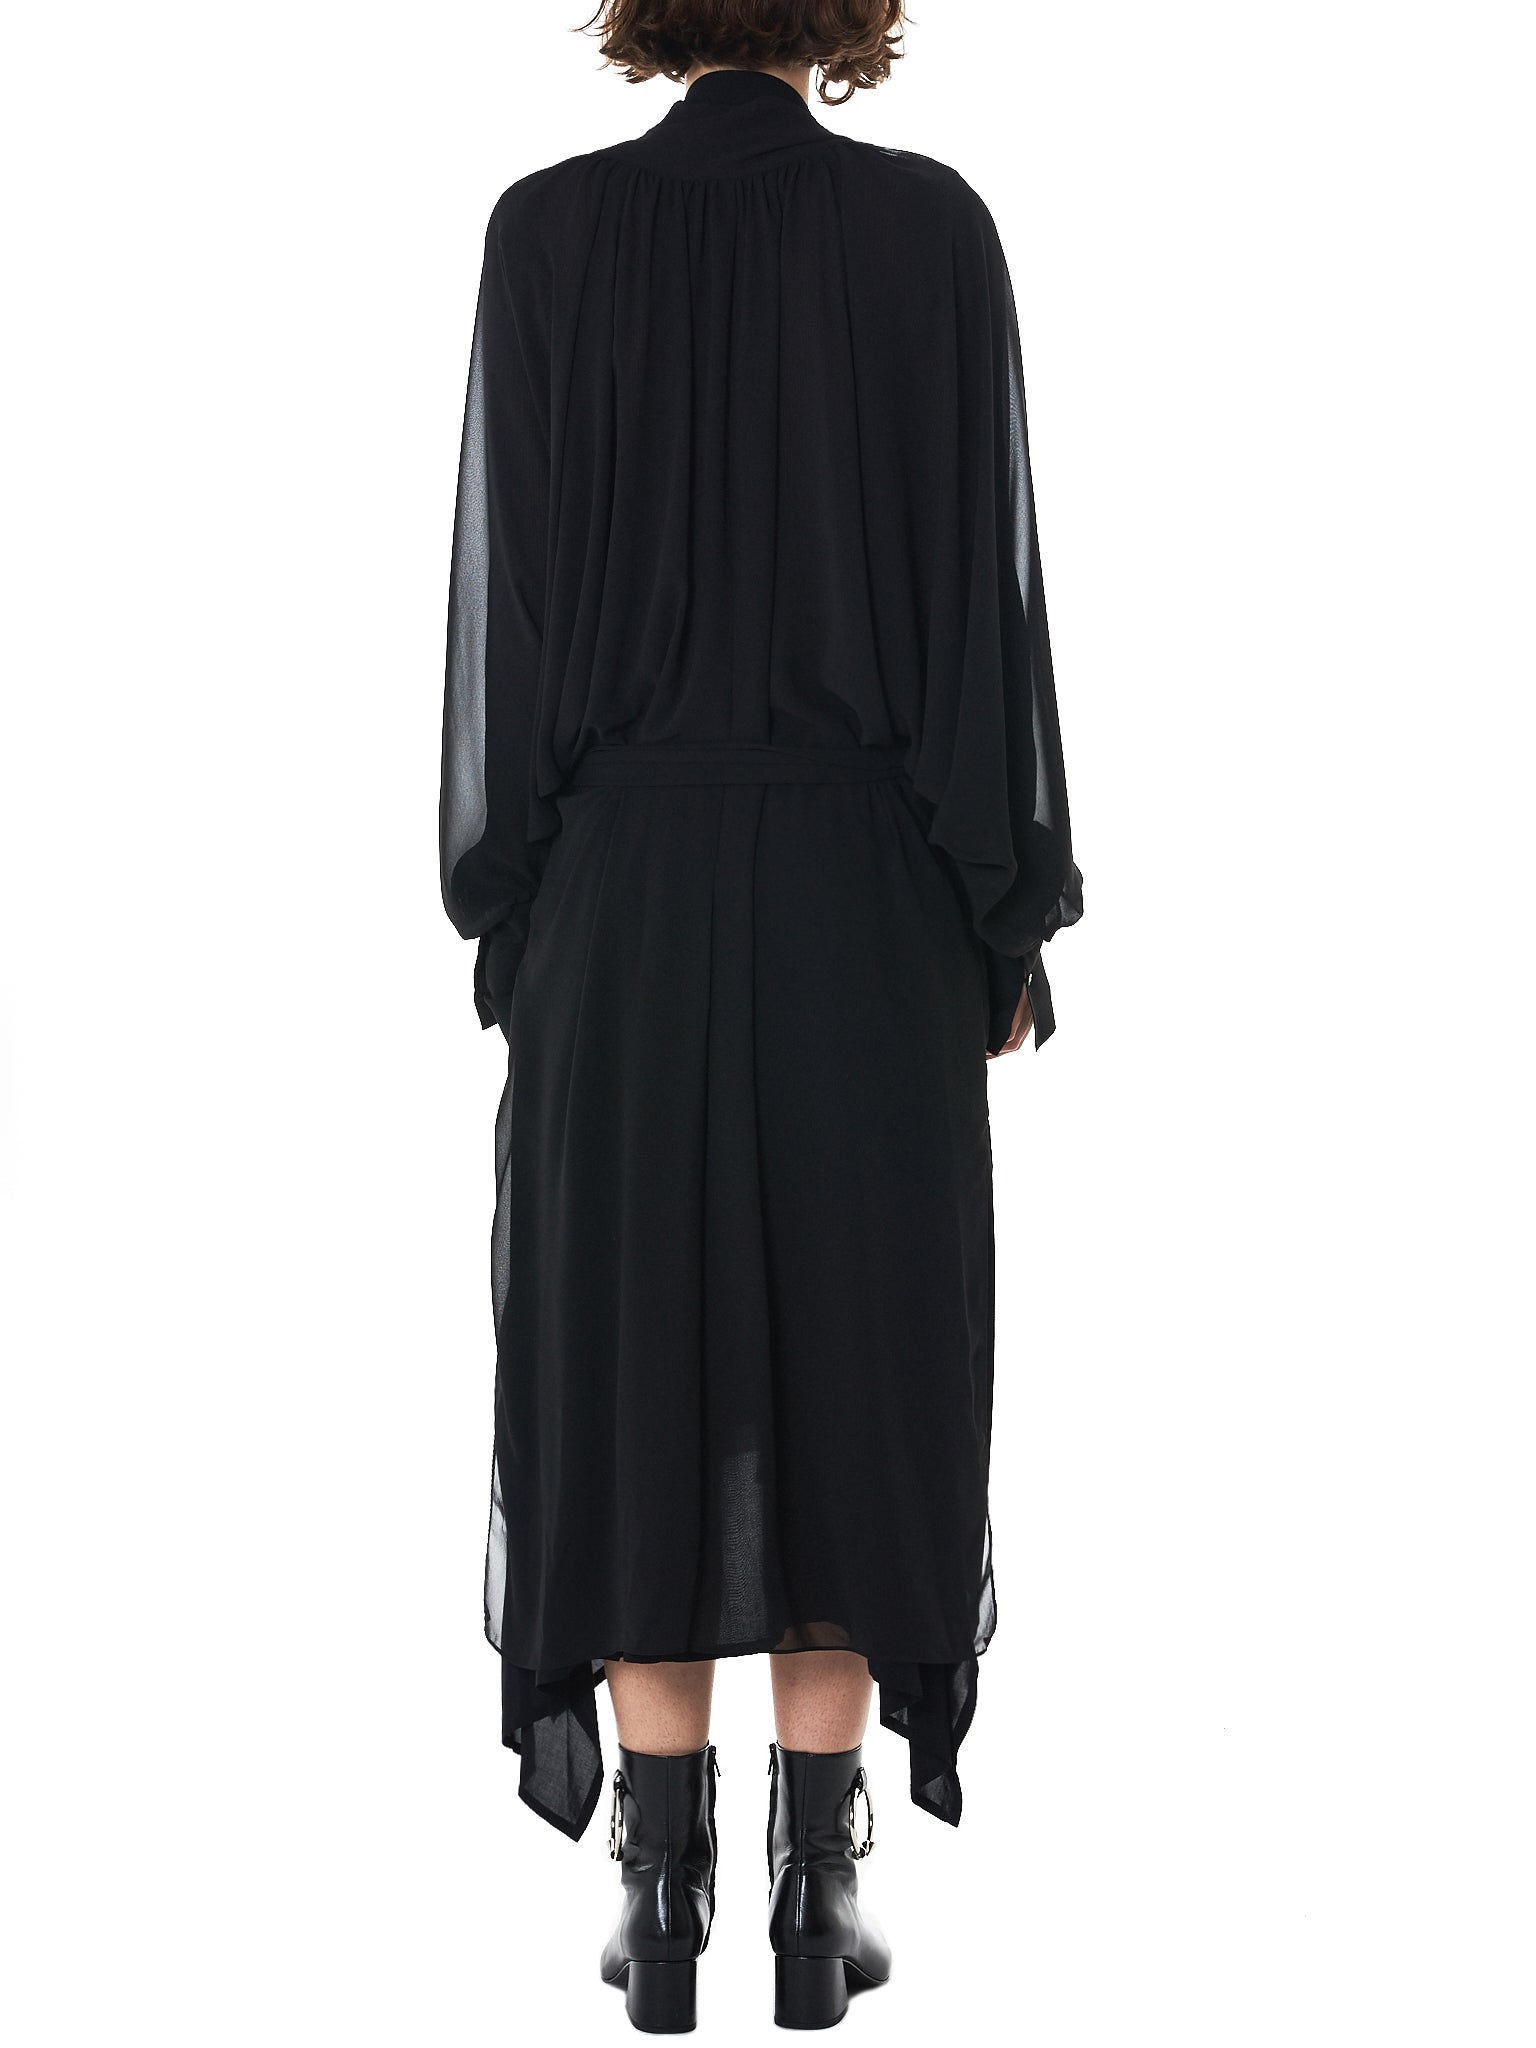 Long Cardigan (GNS-GD146-BLACK)